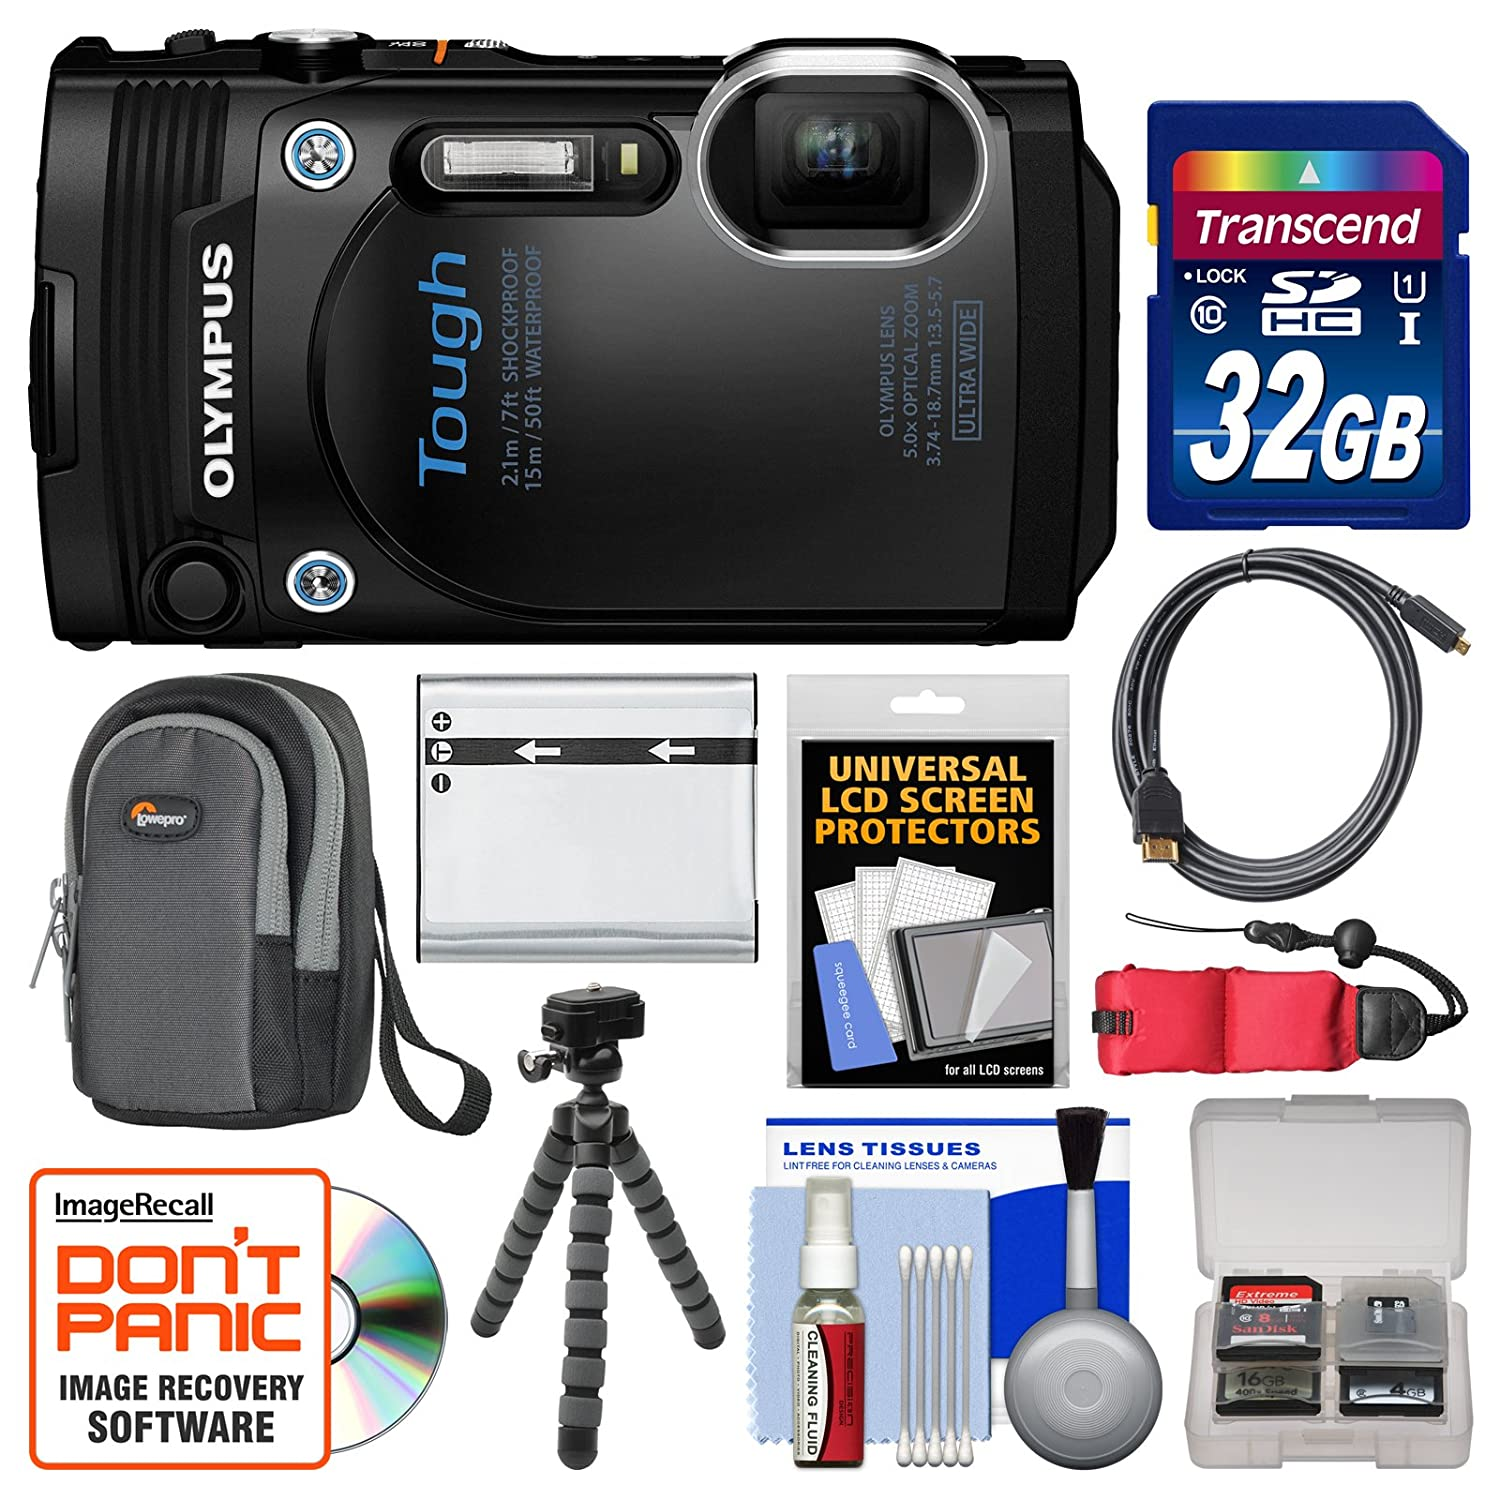 Olympus Tough TG-860 iHS Wi-Fi GPS Shock & Waterproof Digital Camera (Black) with 32GB Card + Case + Battery + Flex Tripod + Float Strap + Kit action камера olympus tg tracker black